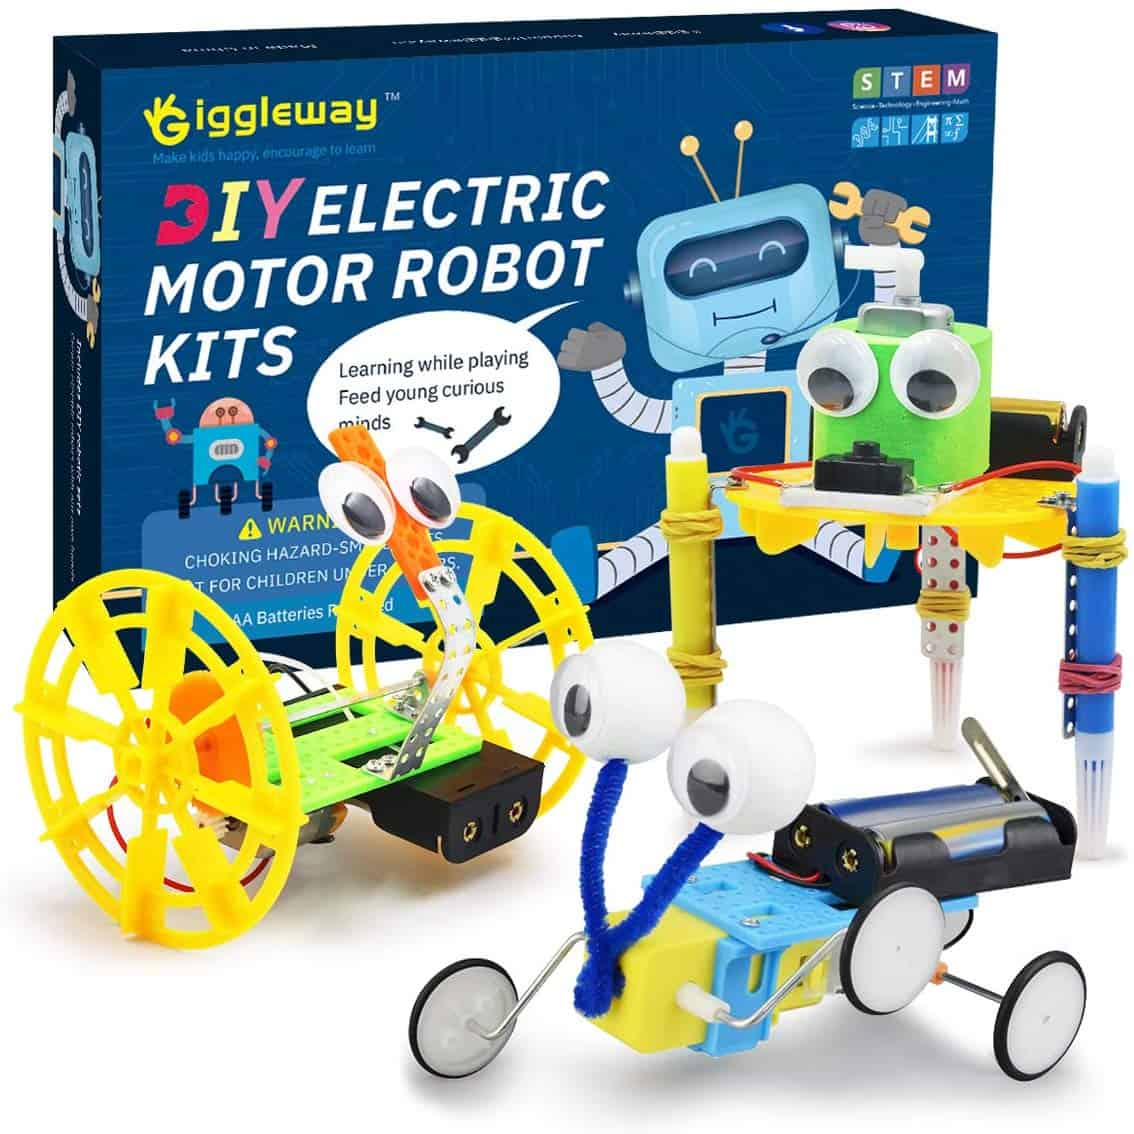 Giggleway Electric Motor Robotic Science Kits